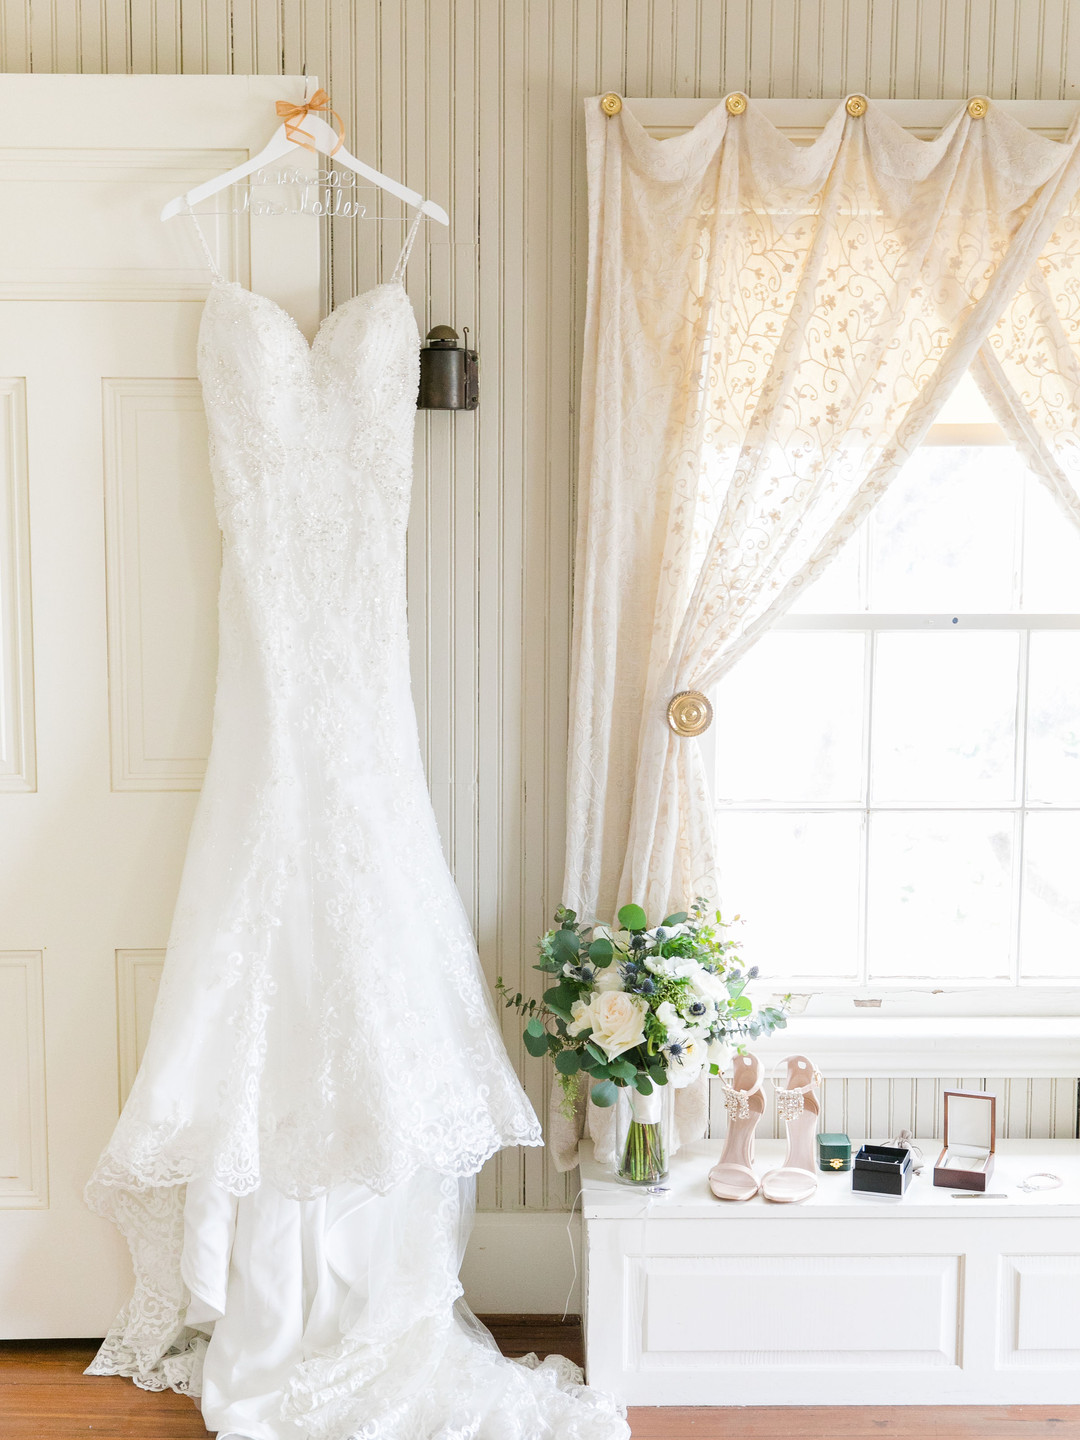 Wedding Dress - Photo by Dana Cubbage